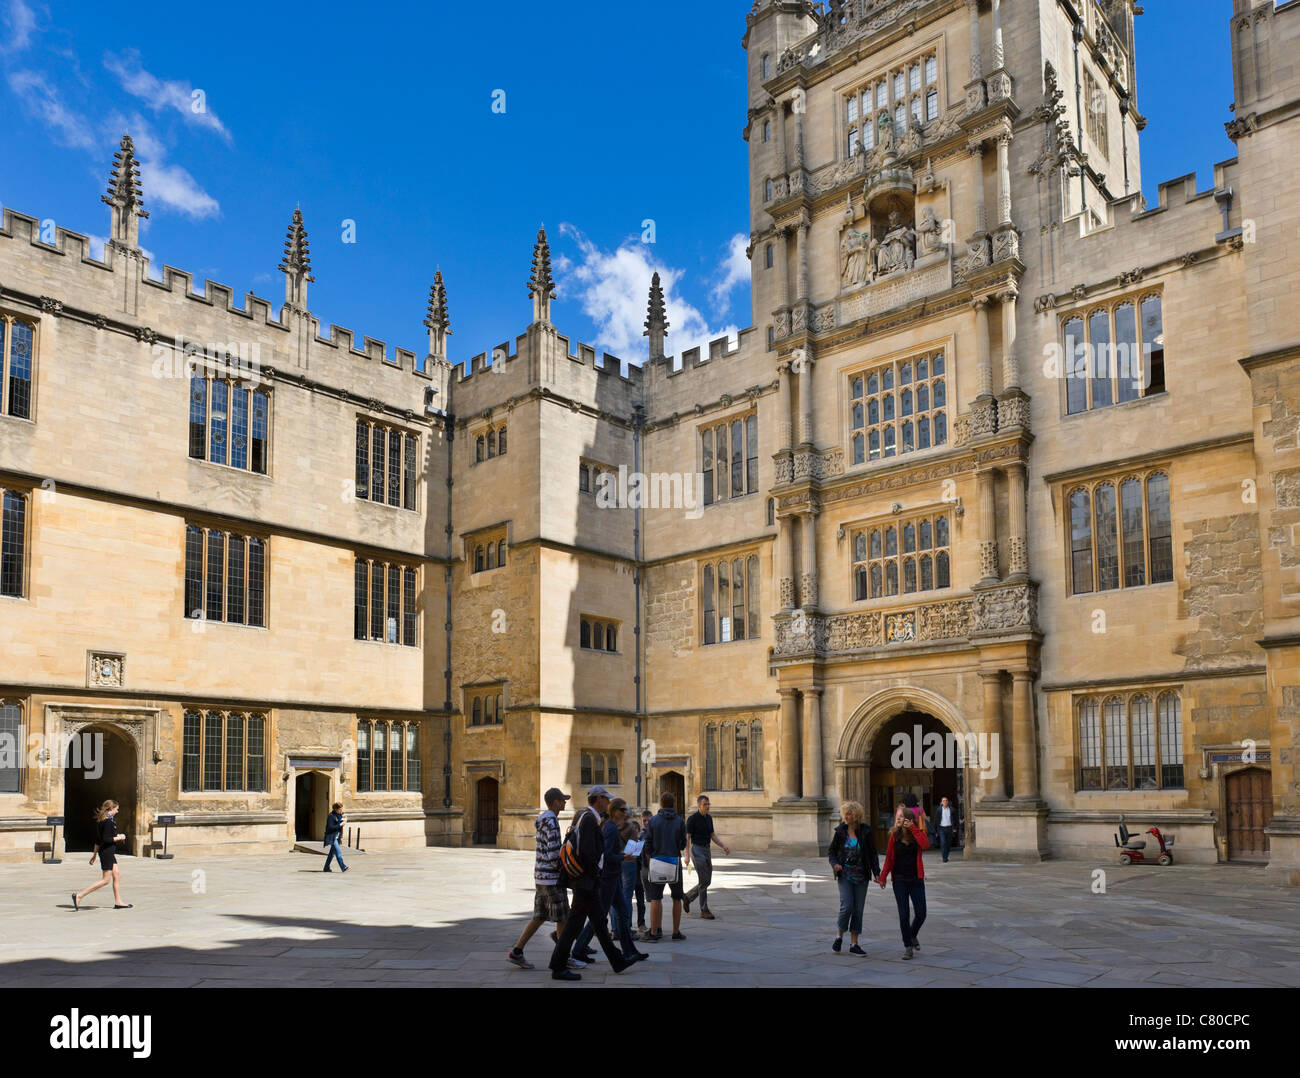 Oxford University. Courtyard of The Bodleian Library (Old Schools Quadrangle), Oxford, England, UK - Stock Image